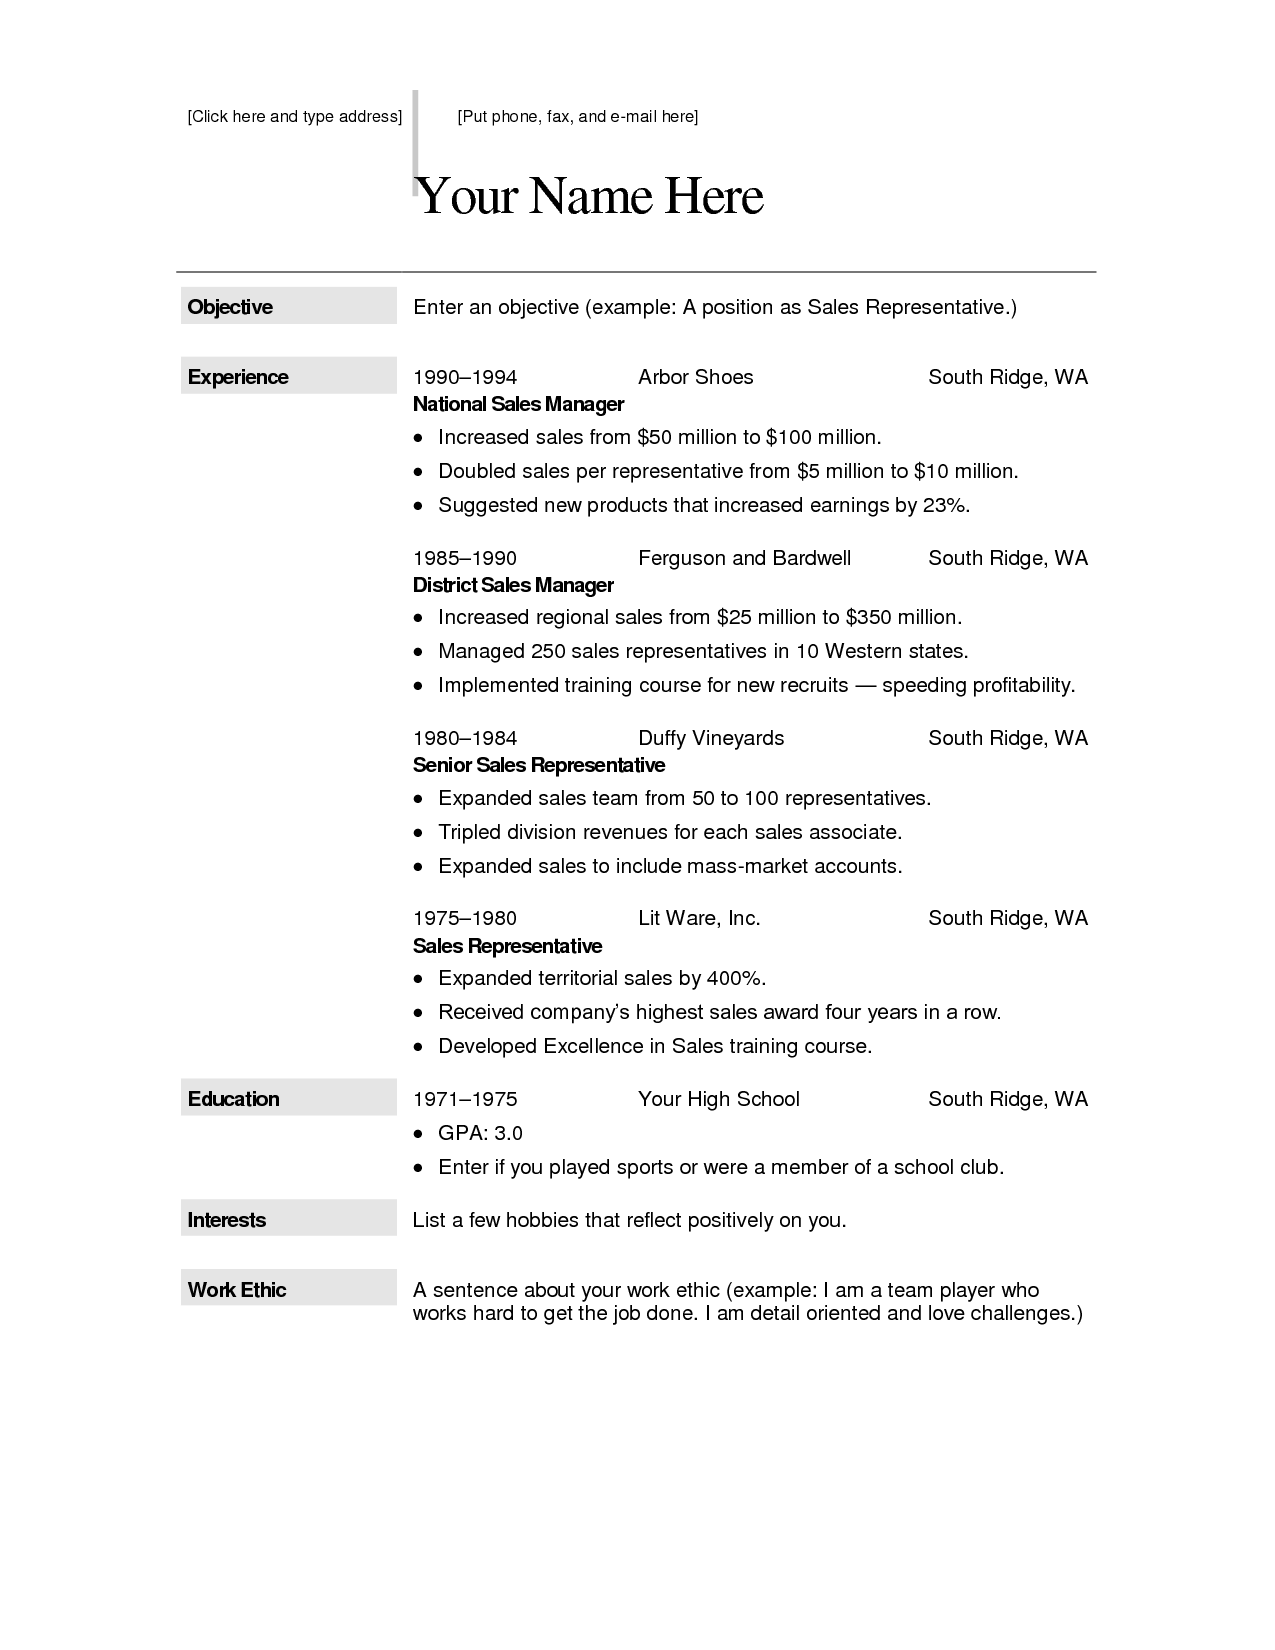 Blank Resume Template Free Creative Resume Templates For Macfree Creative Resume